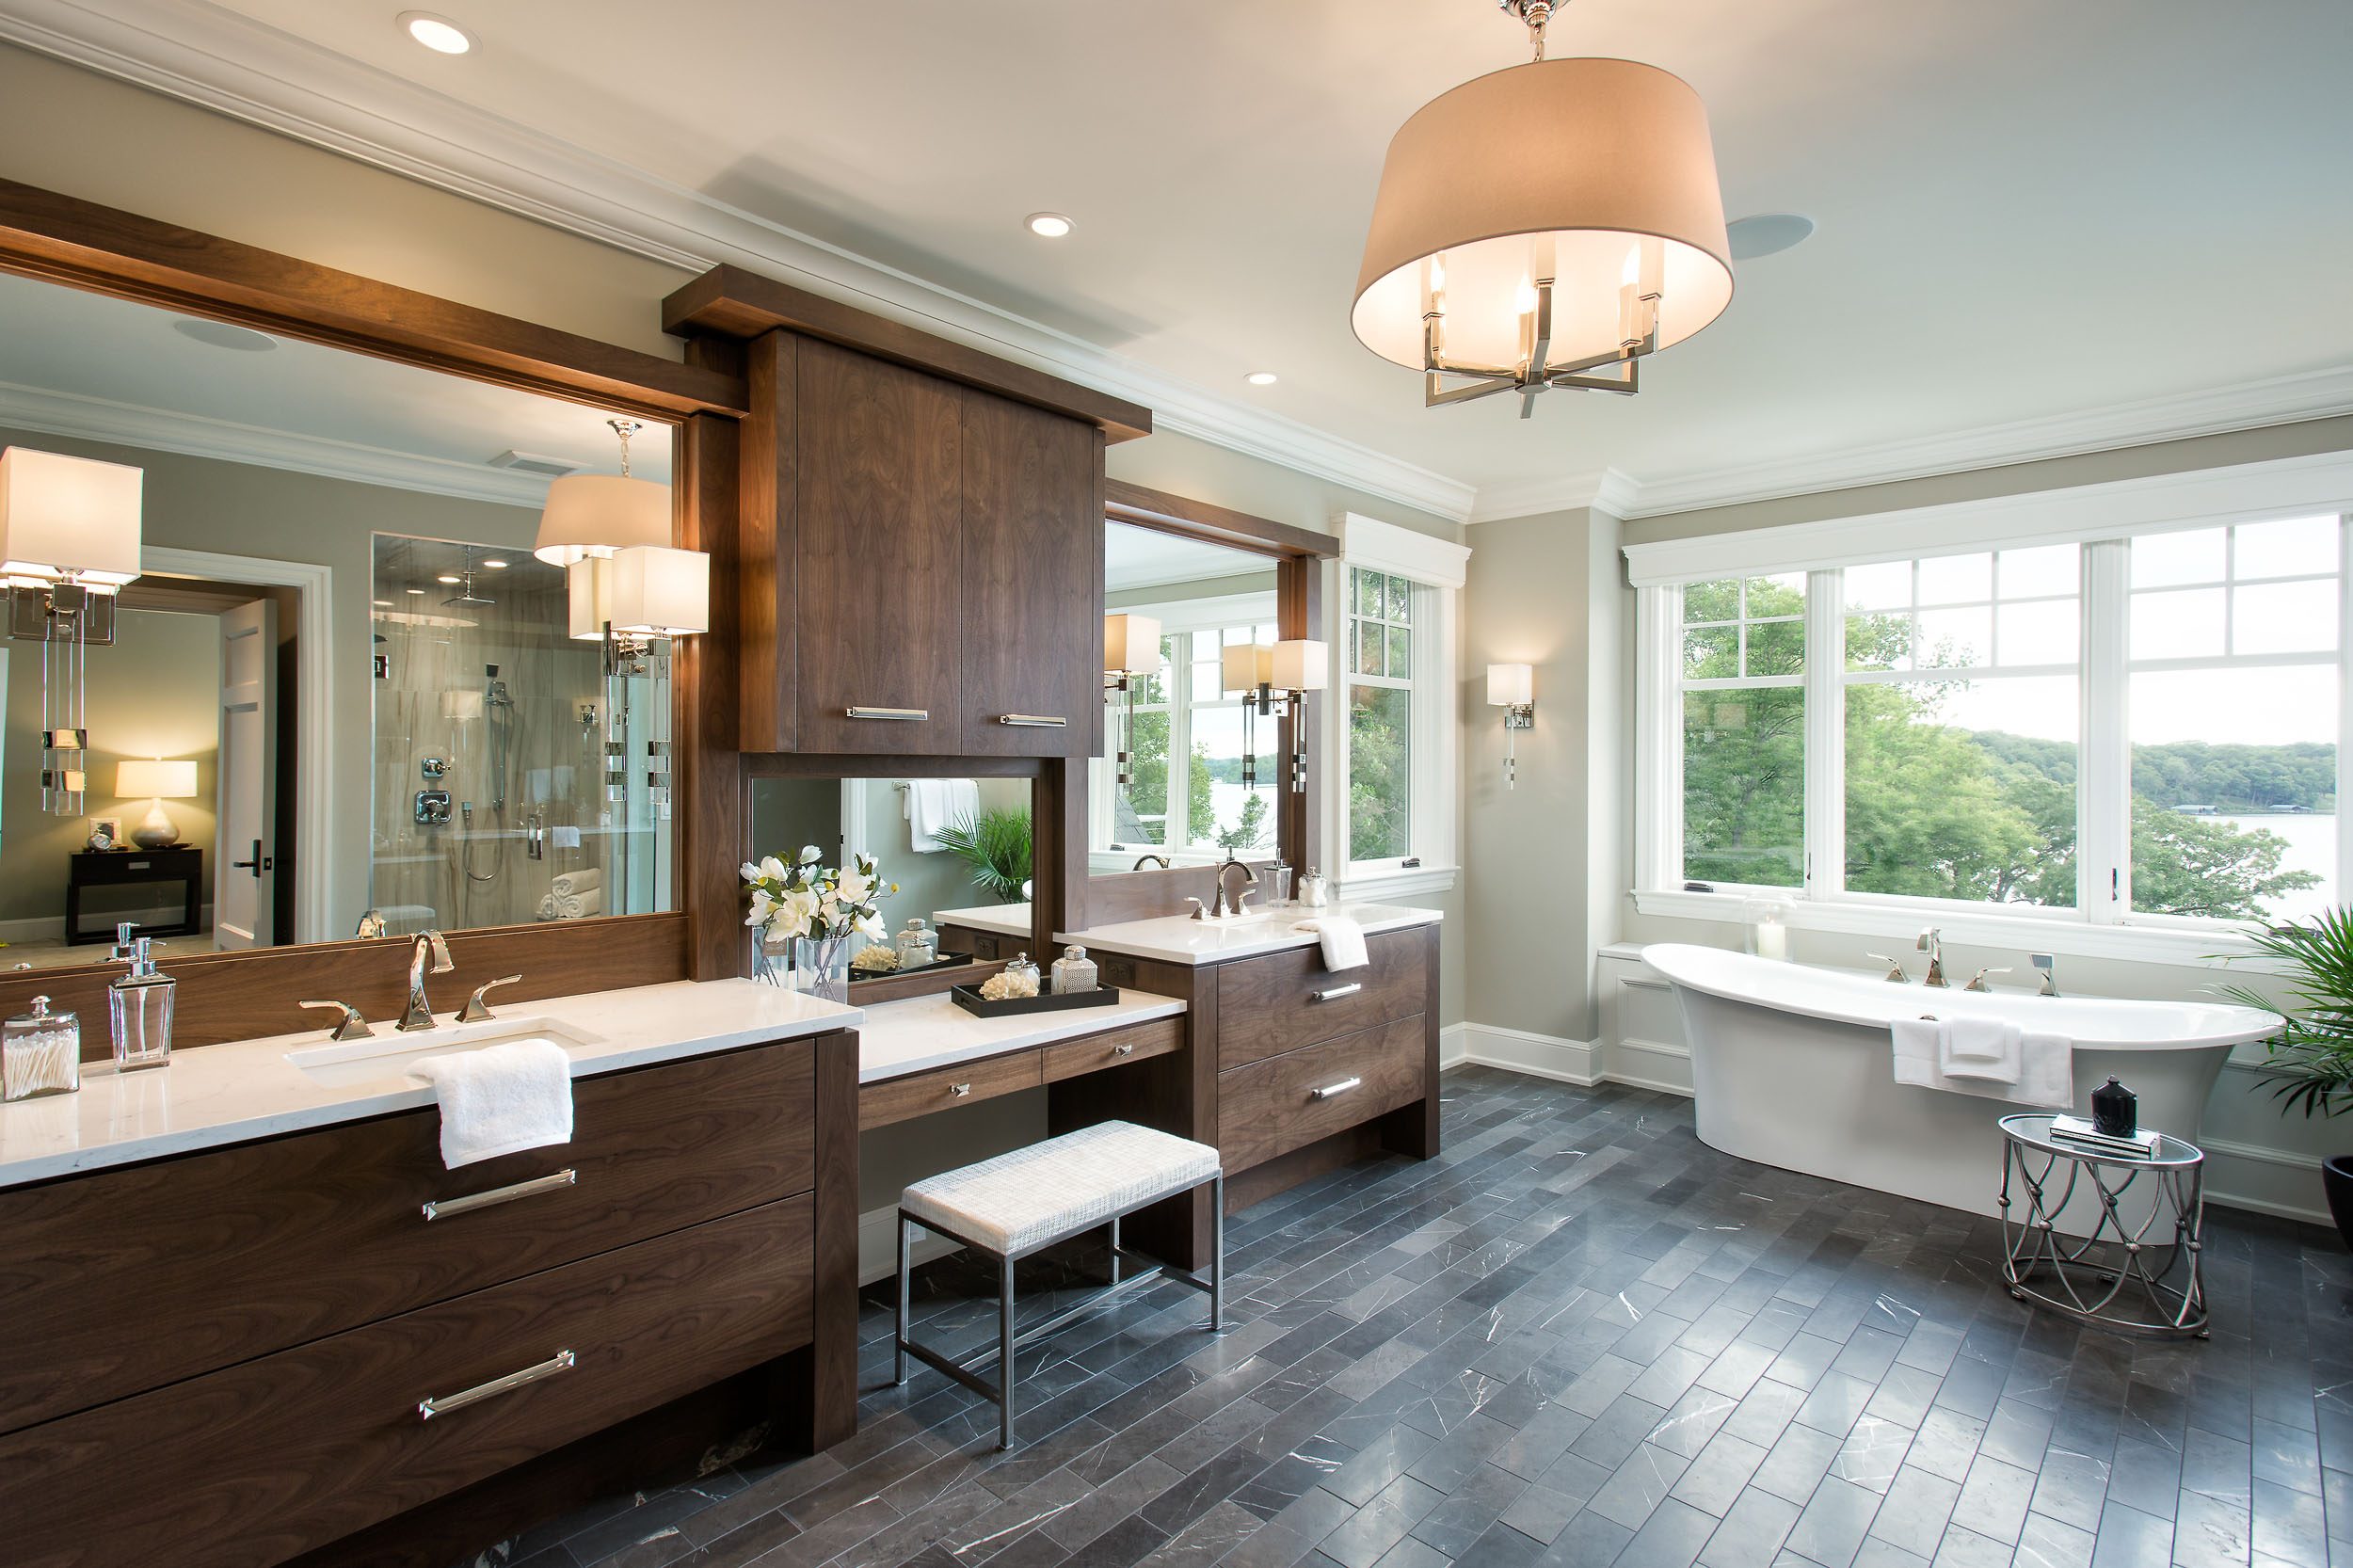 Lake Artisan Home Master Bath Image